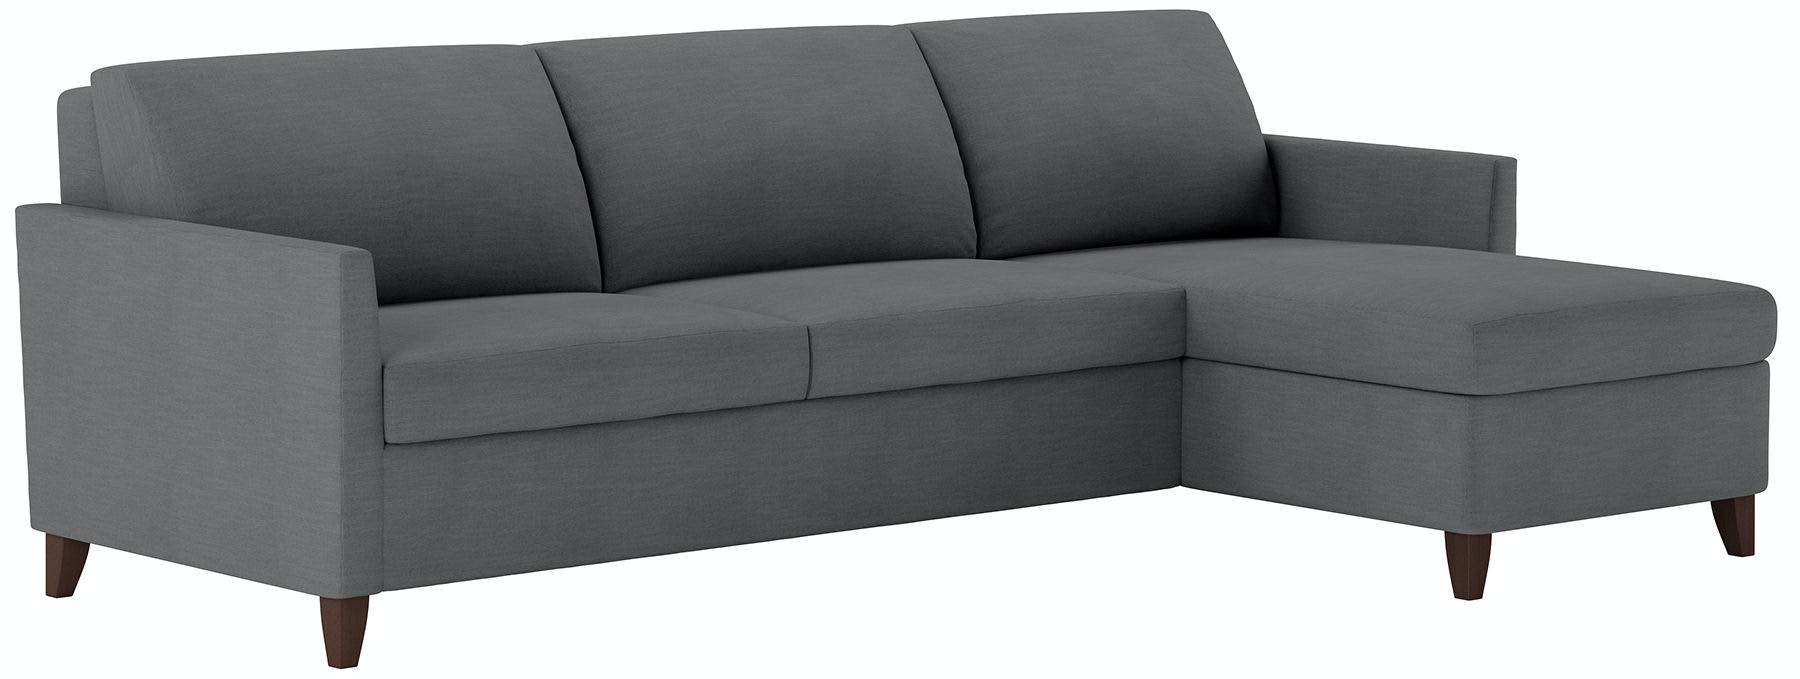 American Leather Living Room 2 Piece Sleeper Sectional Queen Size